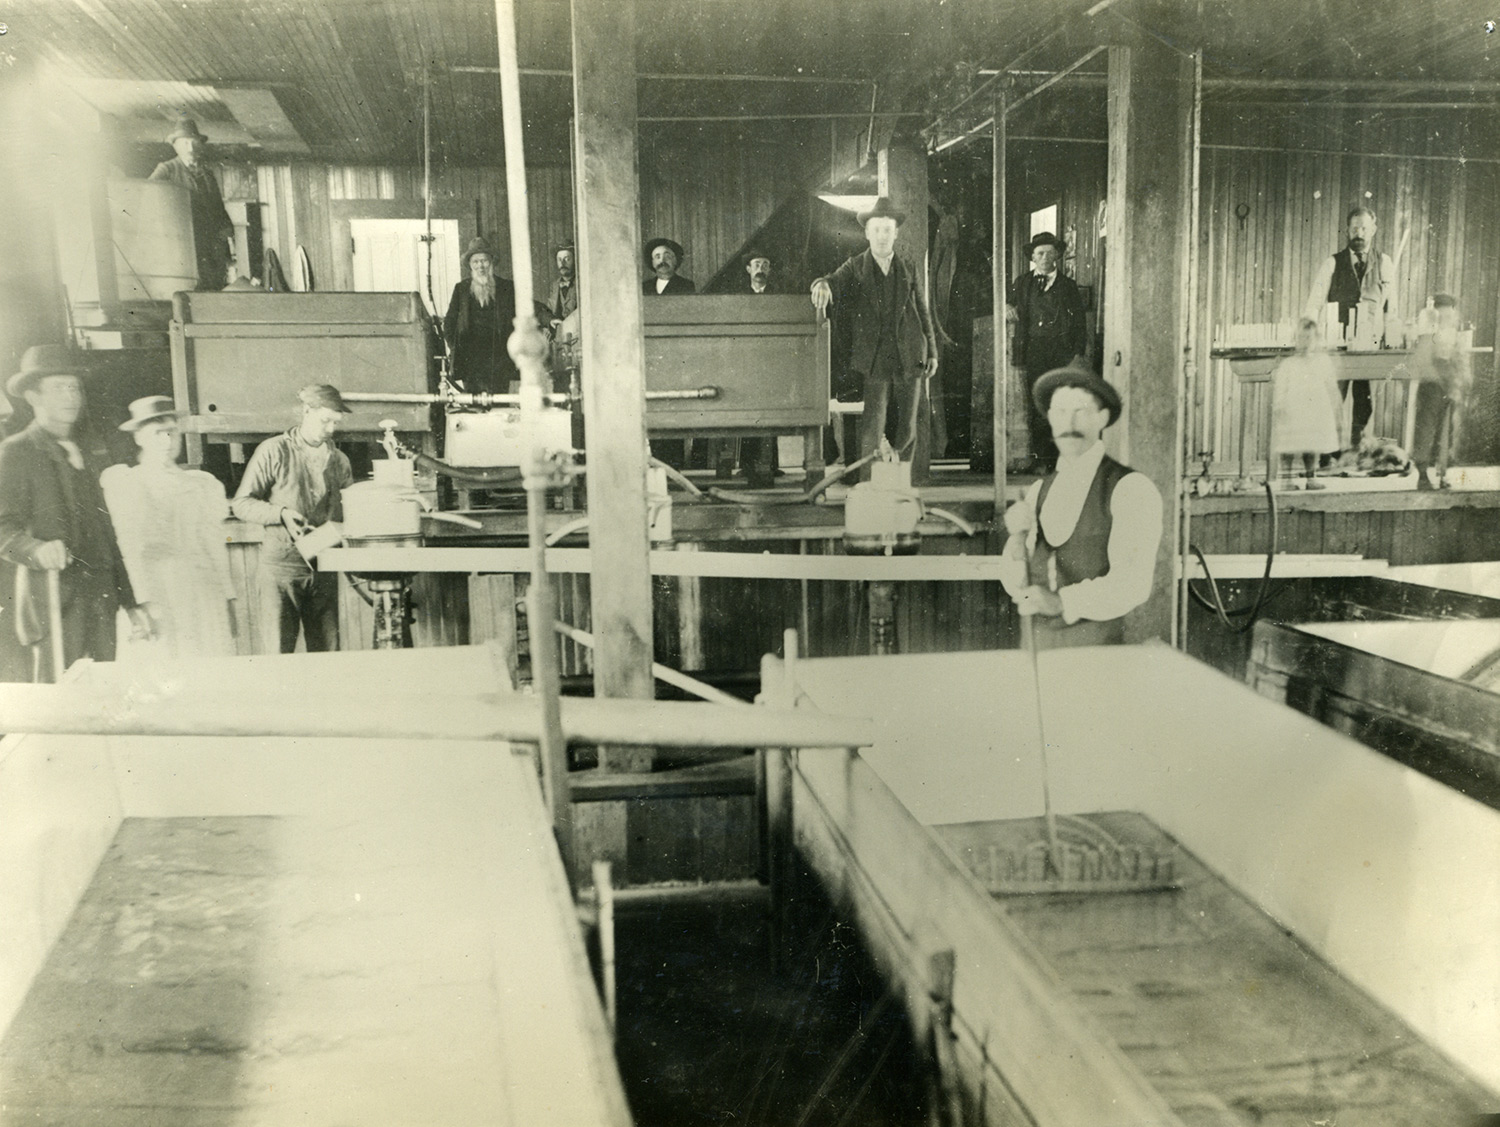 Interior of the Fallon Creamery, one of the region's largest creamery operations, with owners, workers, and probably some family members, circa 1900.